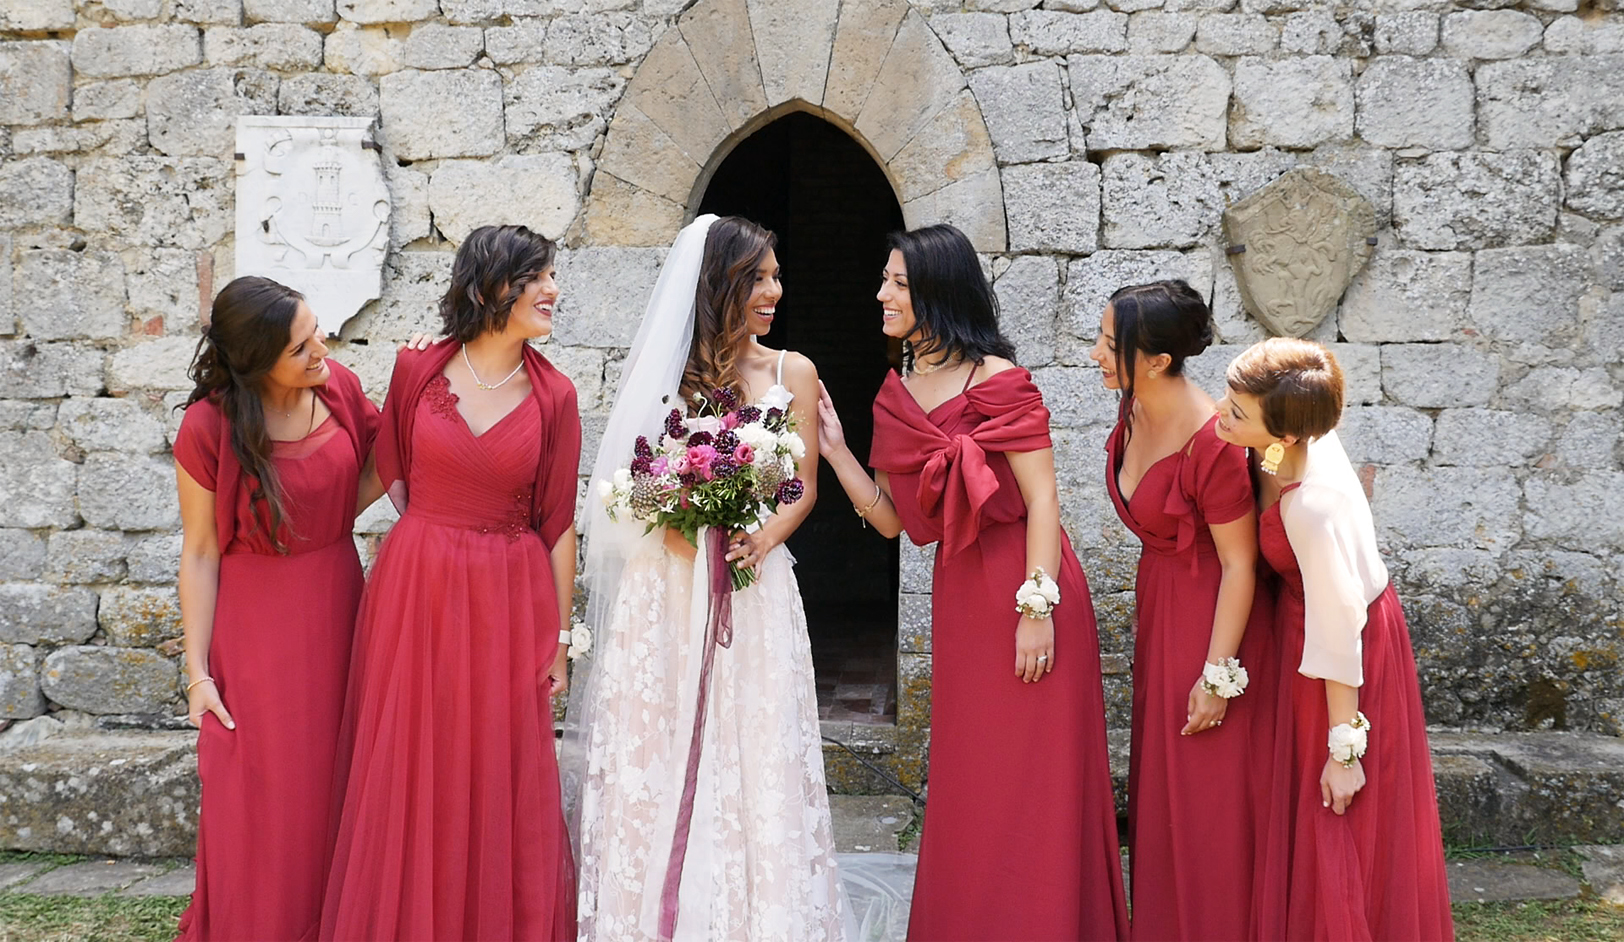 wedding-in-tuscany-bride-bridesmaids-1.jpg